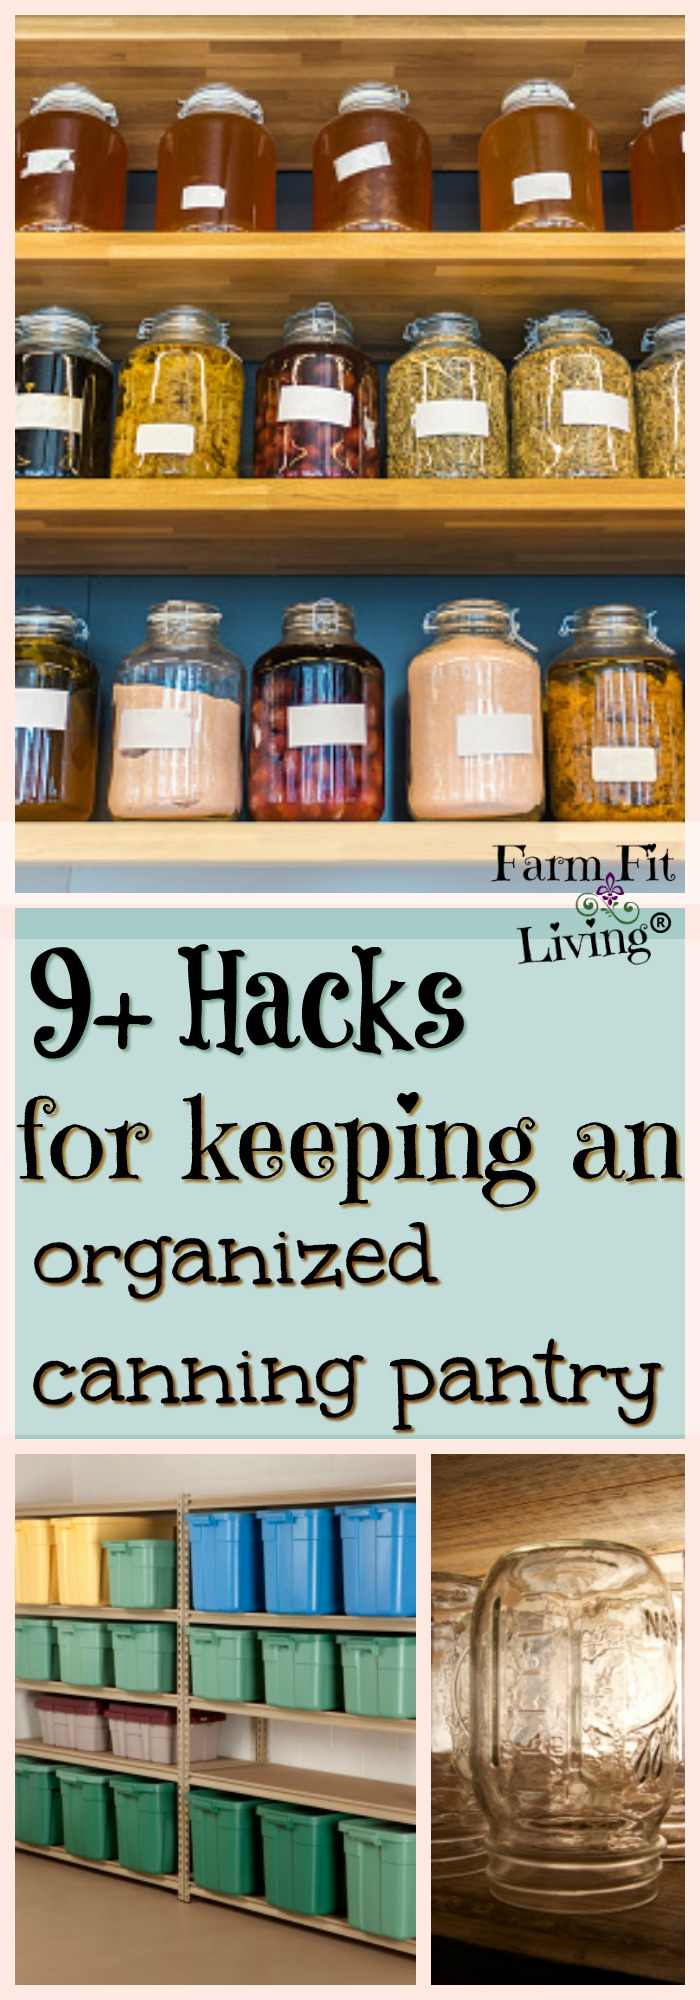 Are you struggling with organizing your canning space? Here are 9+ Hacks for keeping an organized canning pantry.